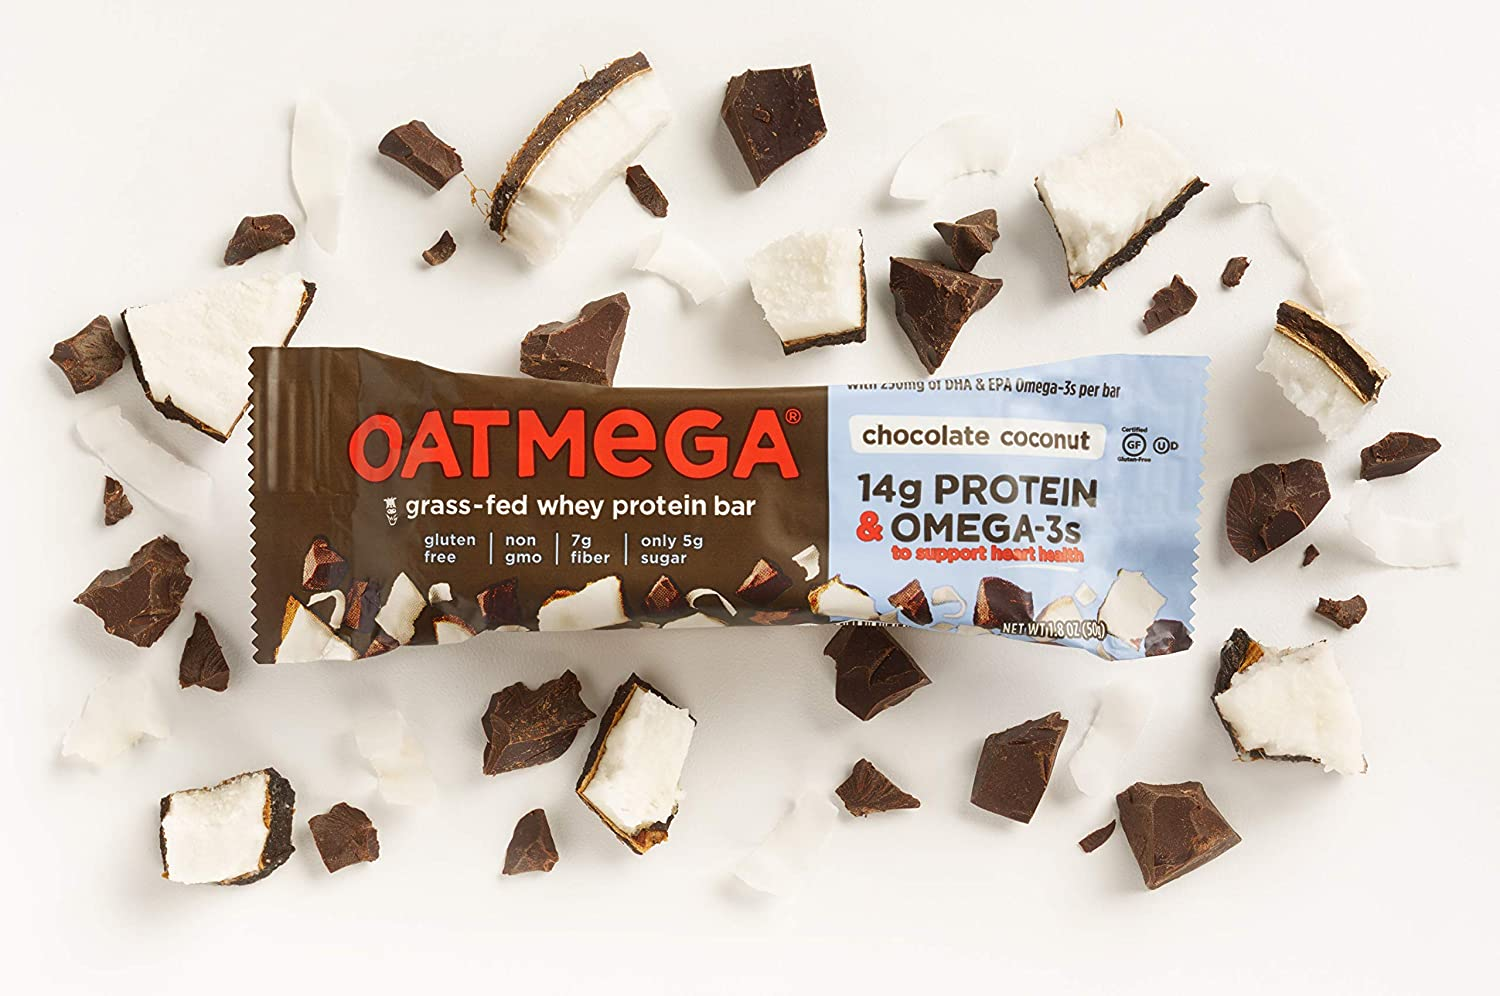 OATMEGA Protein Bar, Chocolate Coconut, Energy Bars Made with Omega-3 and  Grass-Fed Whey